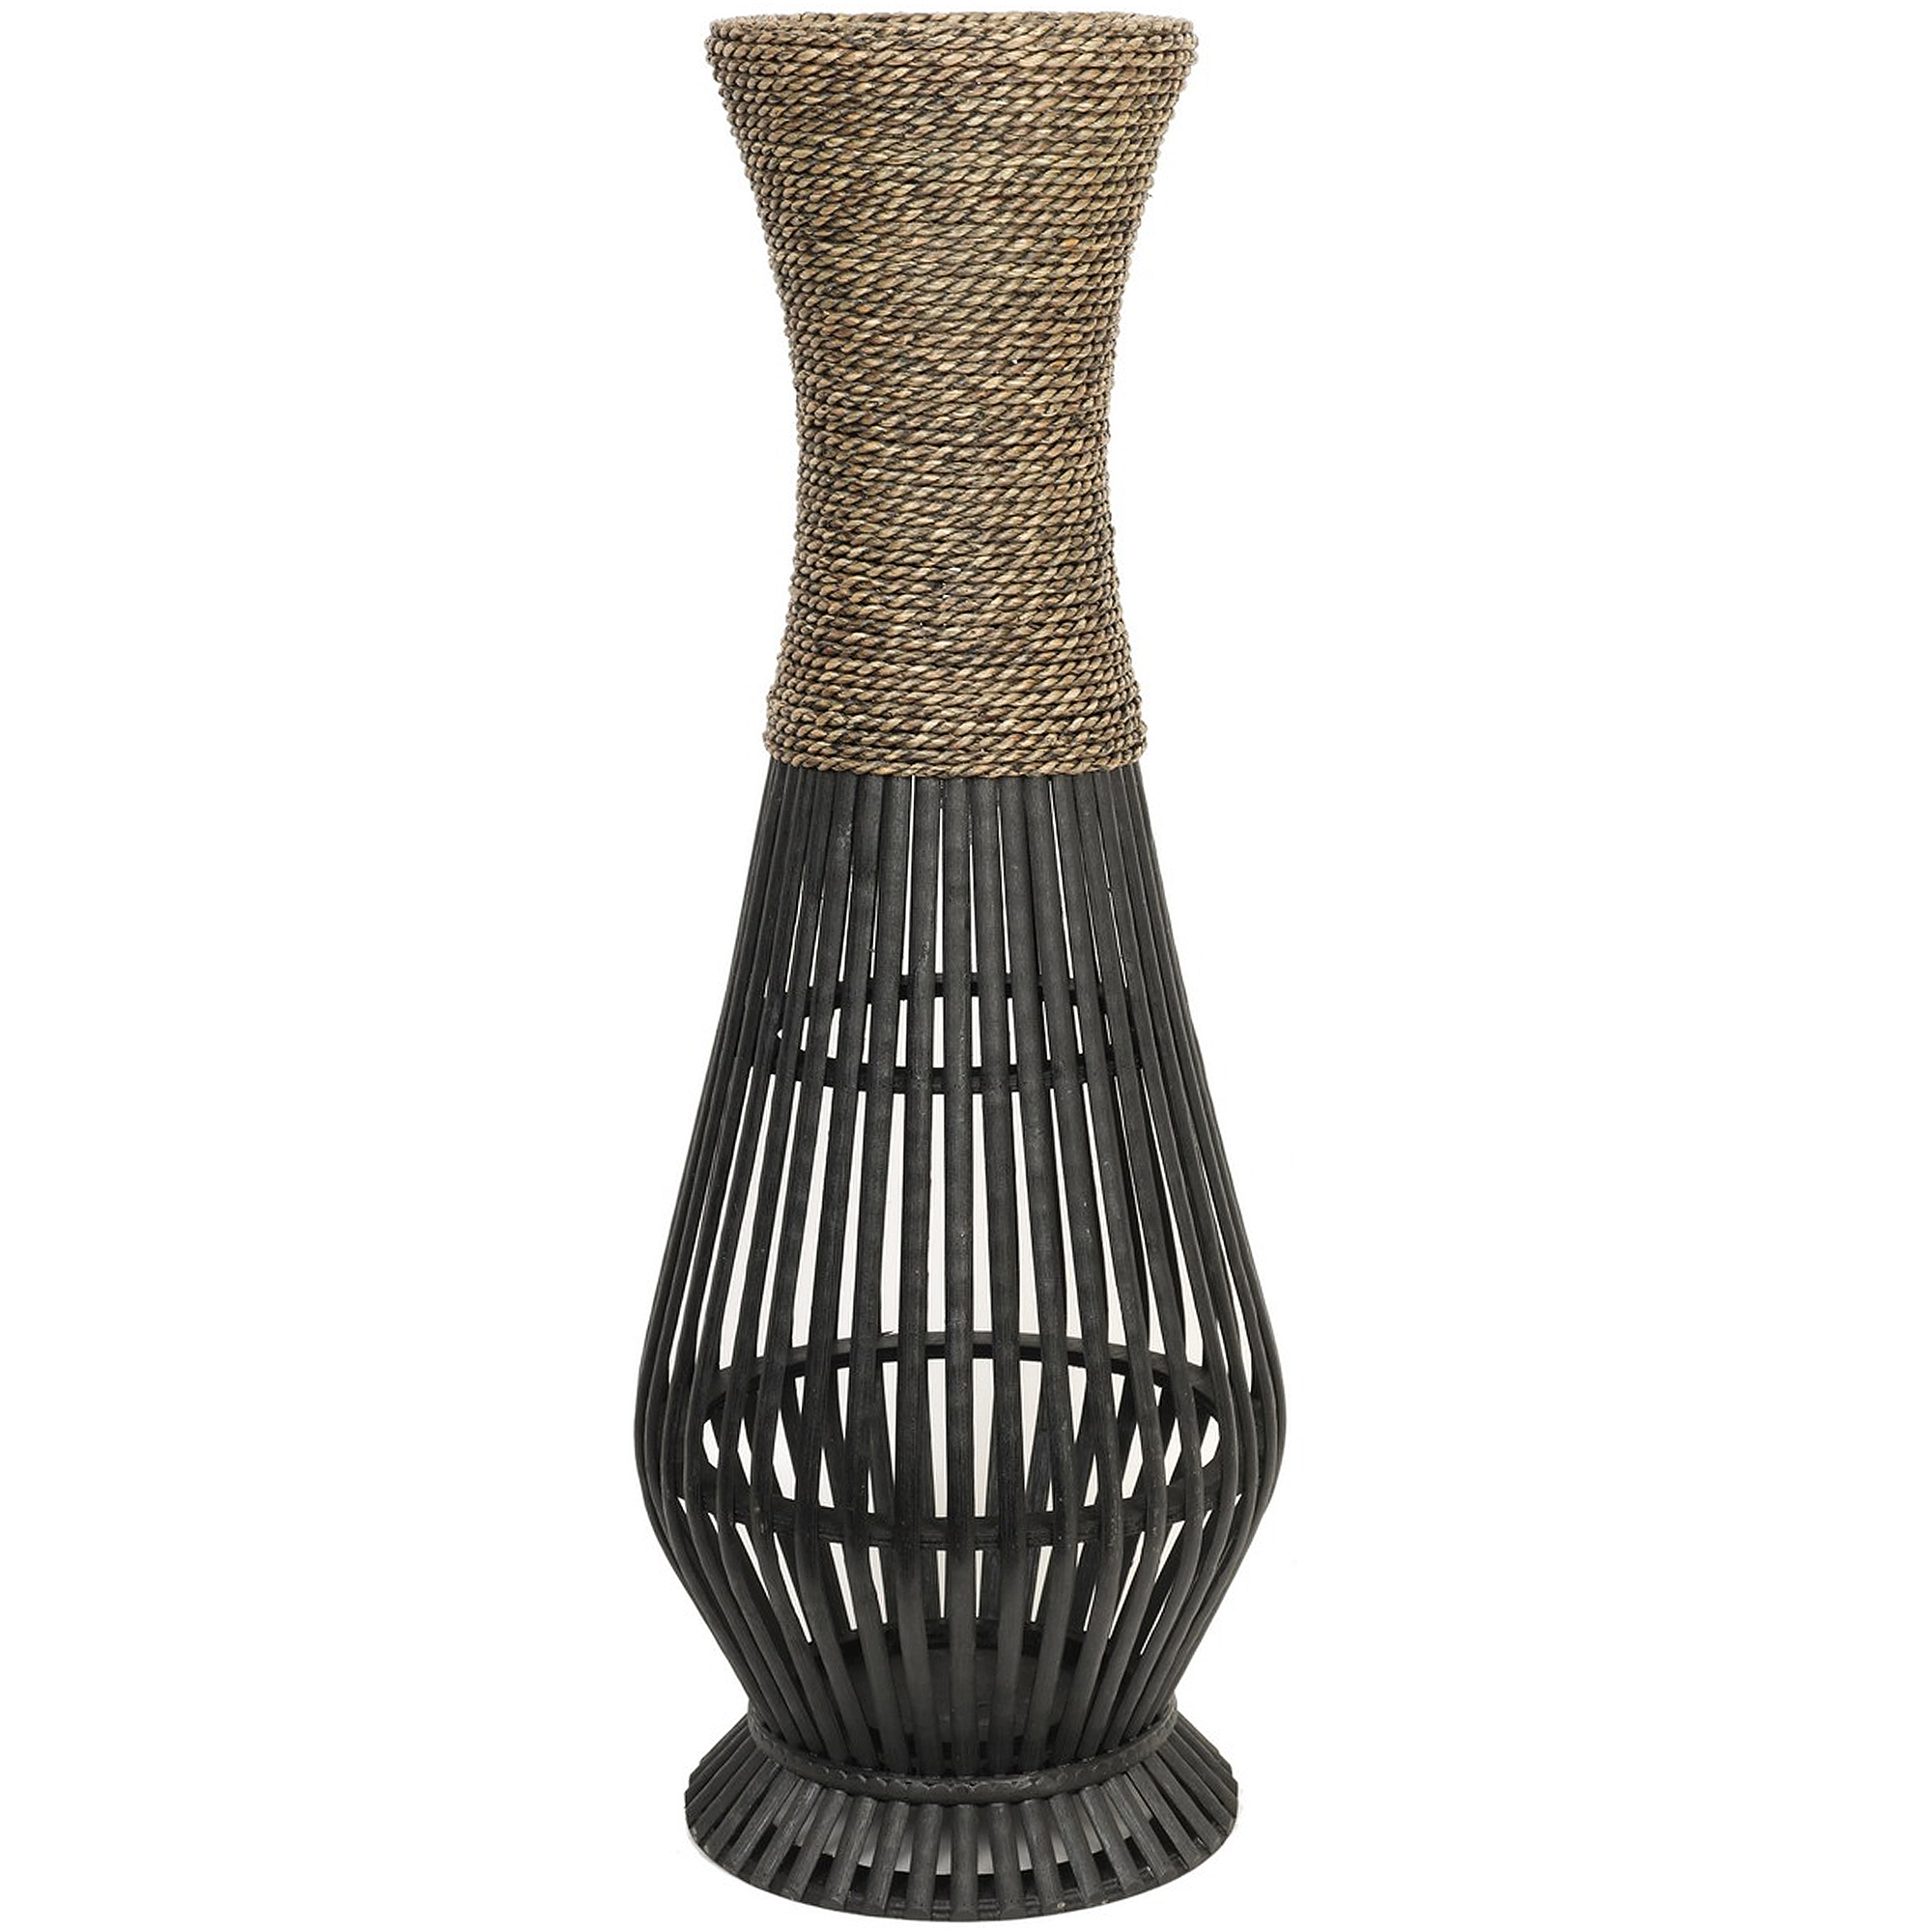 Hosley natural bamboo seagrass vase home decor flower tall for Decoration vase